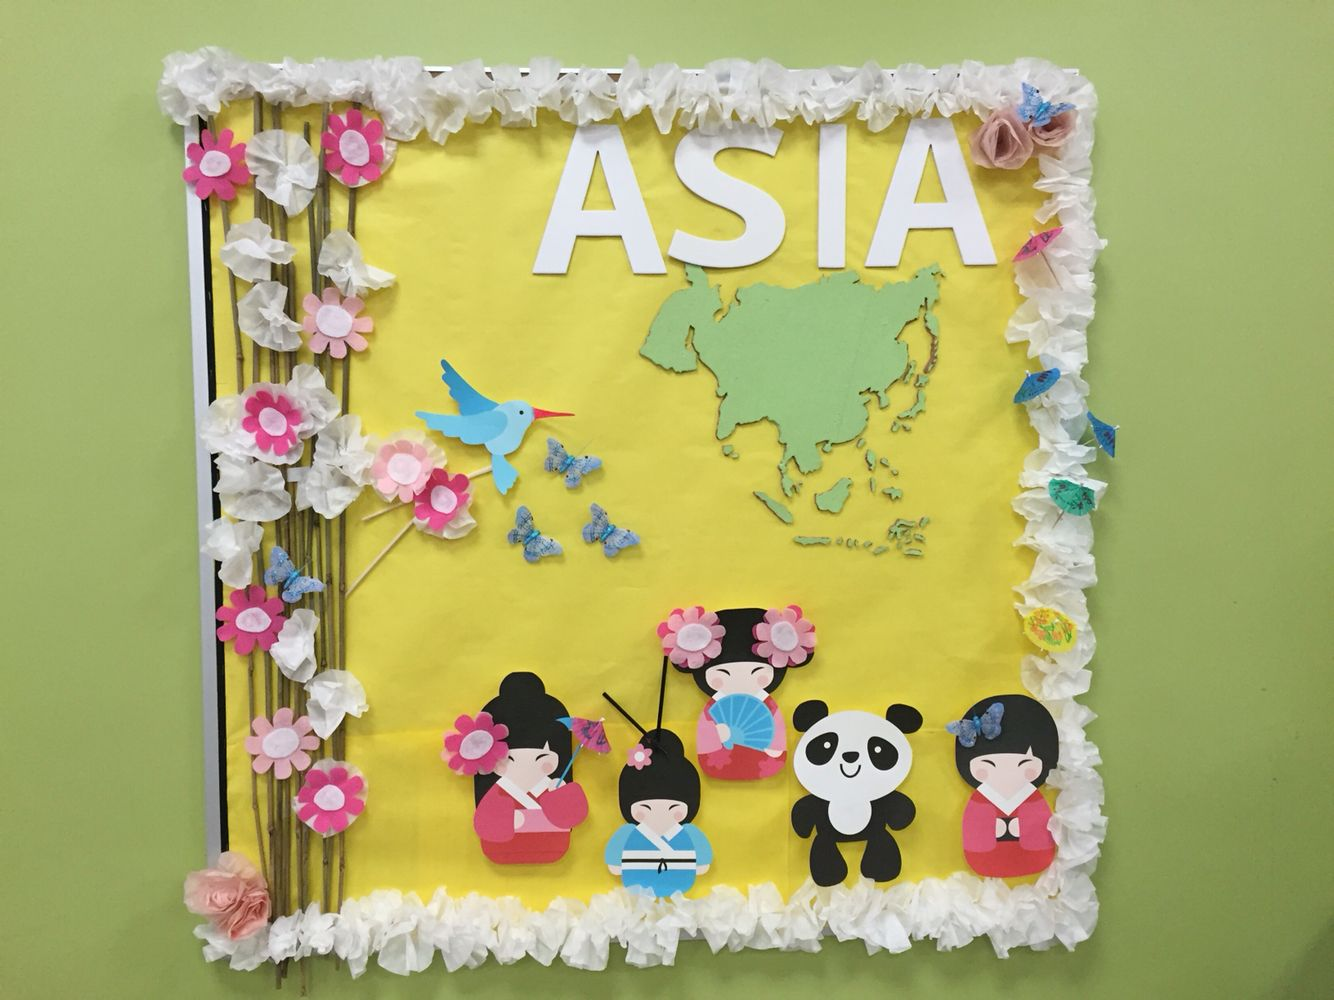 Asia bulletin board | Japan crafts, Creative classroom ...